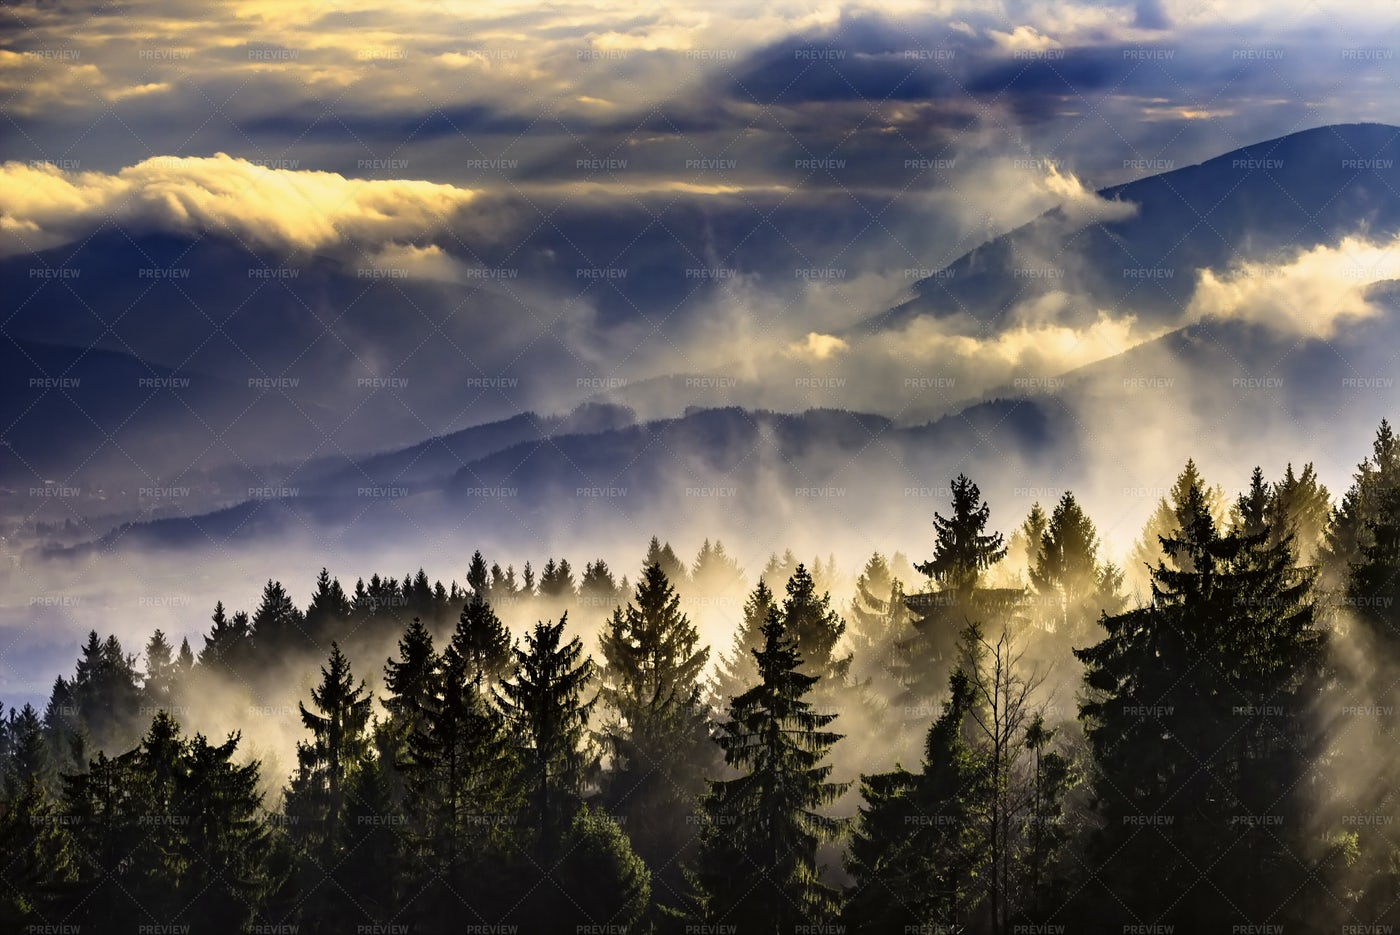 Foggy Landscape With Trees: Stock Photos